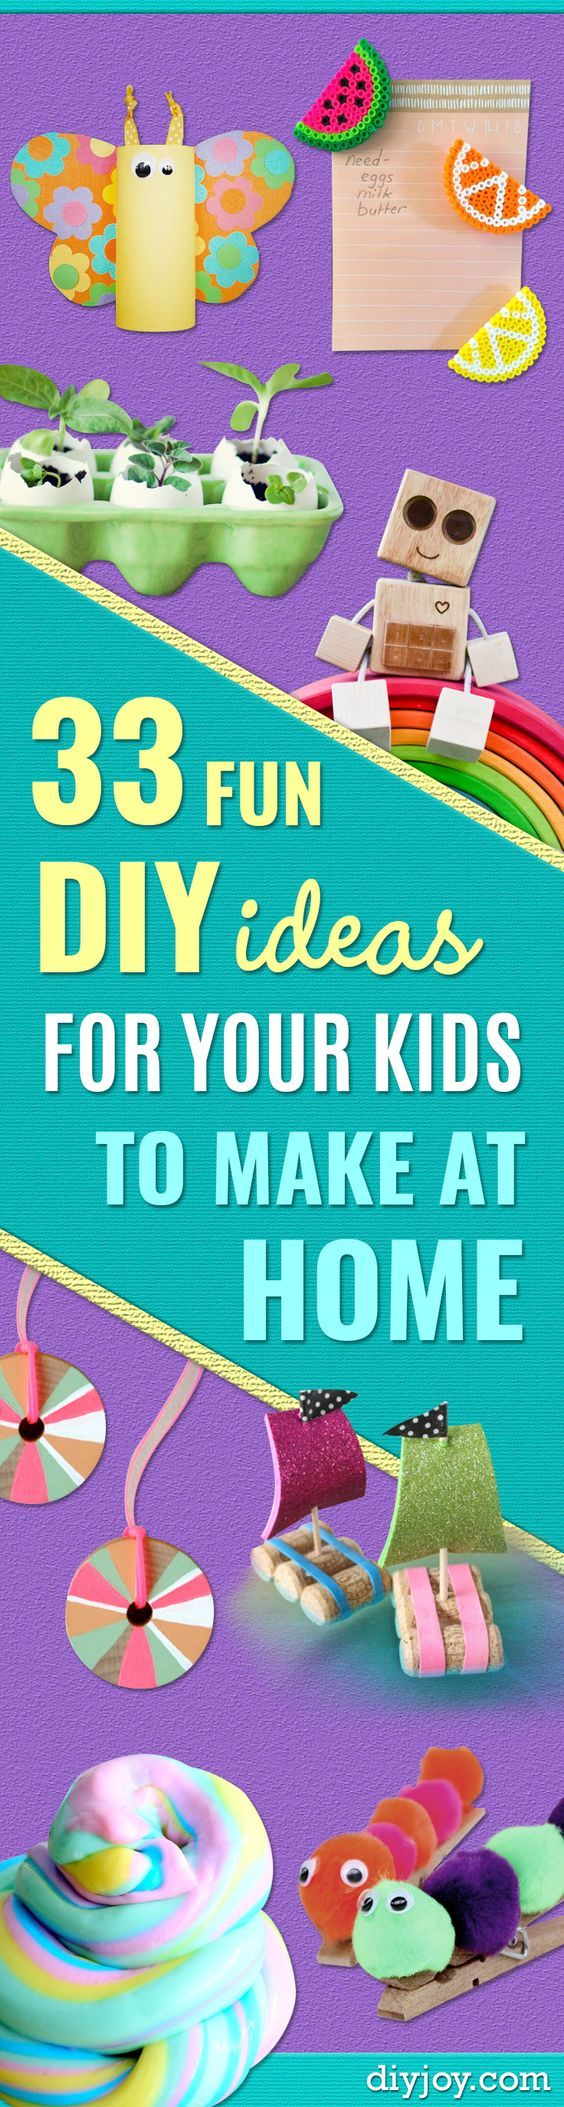 Craft Ideas for Children - Cute Paper Crafts, Fall and Winter Fun, Things For Toddlers, Babies, Boys and Girls to Make At Home http://diyjoy.com/diy-ideas-for-kids-to-make::